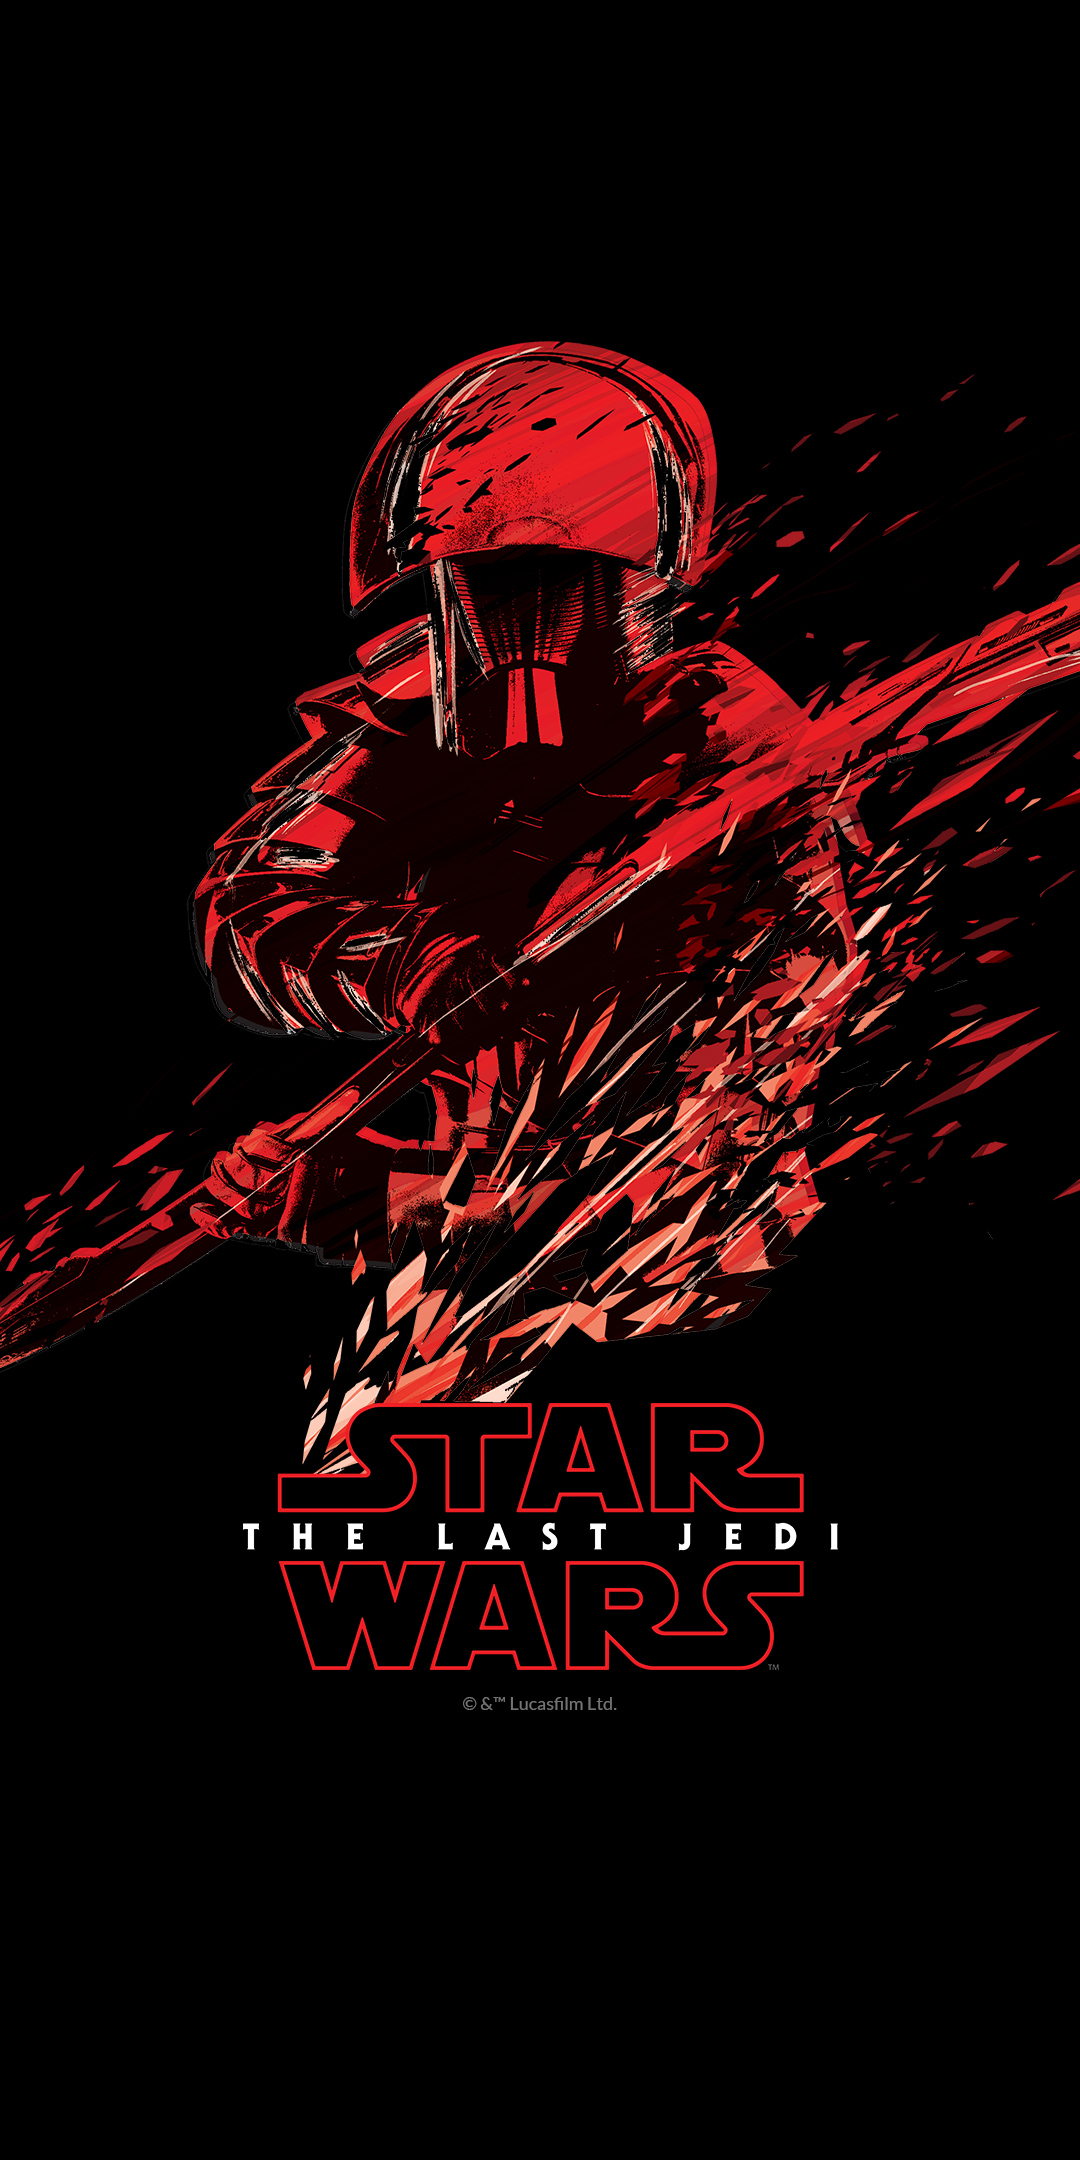 Oneplus 5t Star Wars The Last Jedi Wallpapers Download Leaked